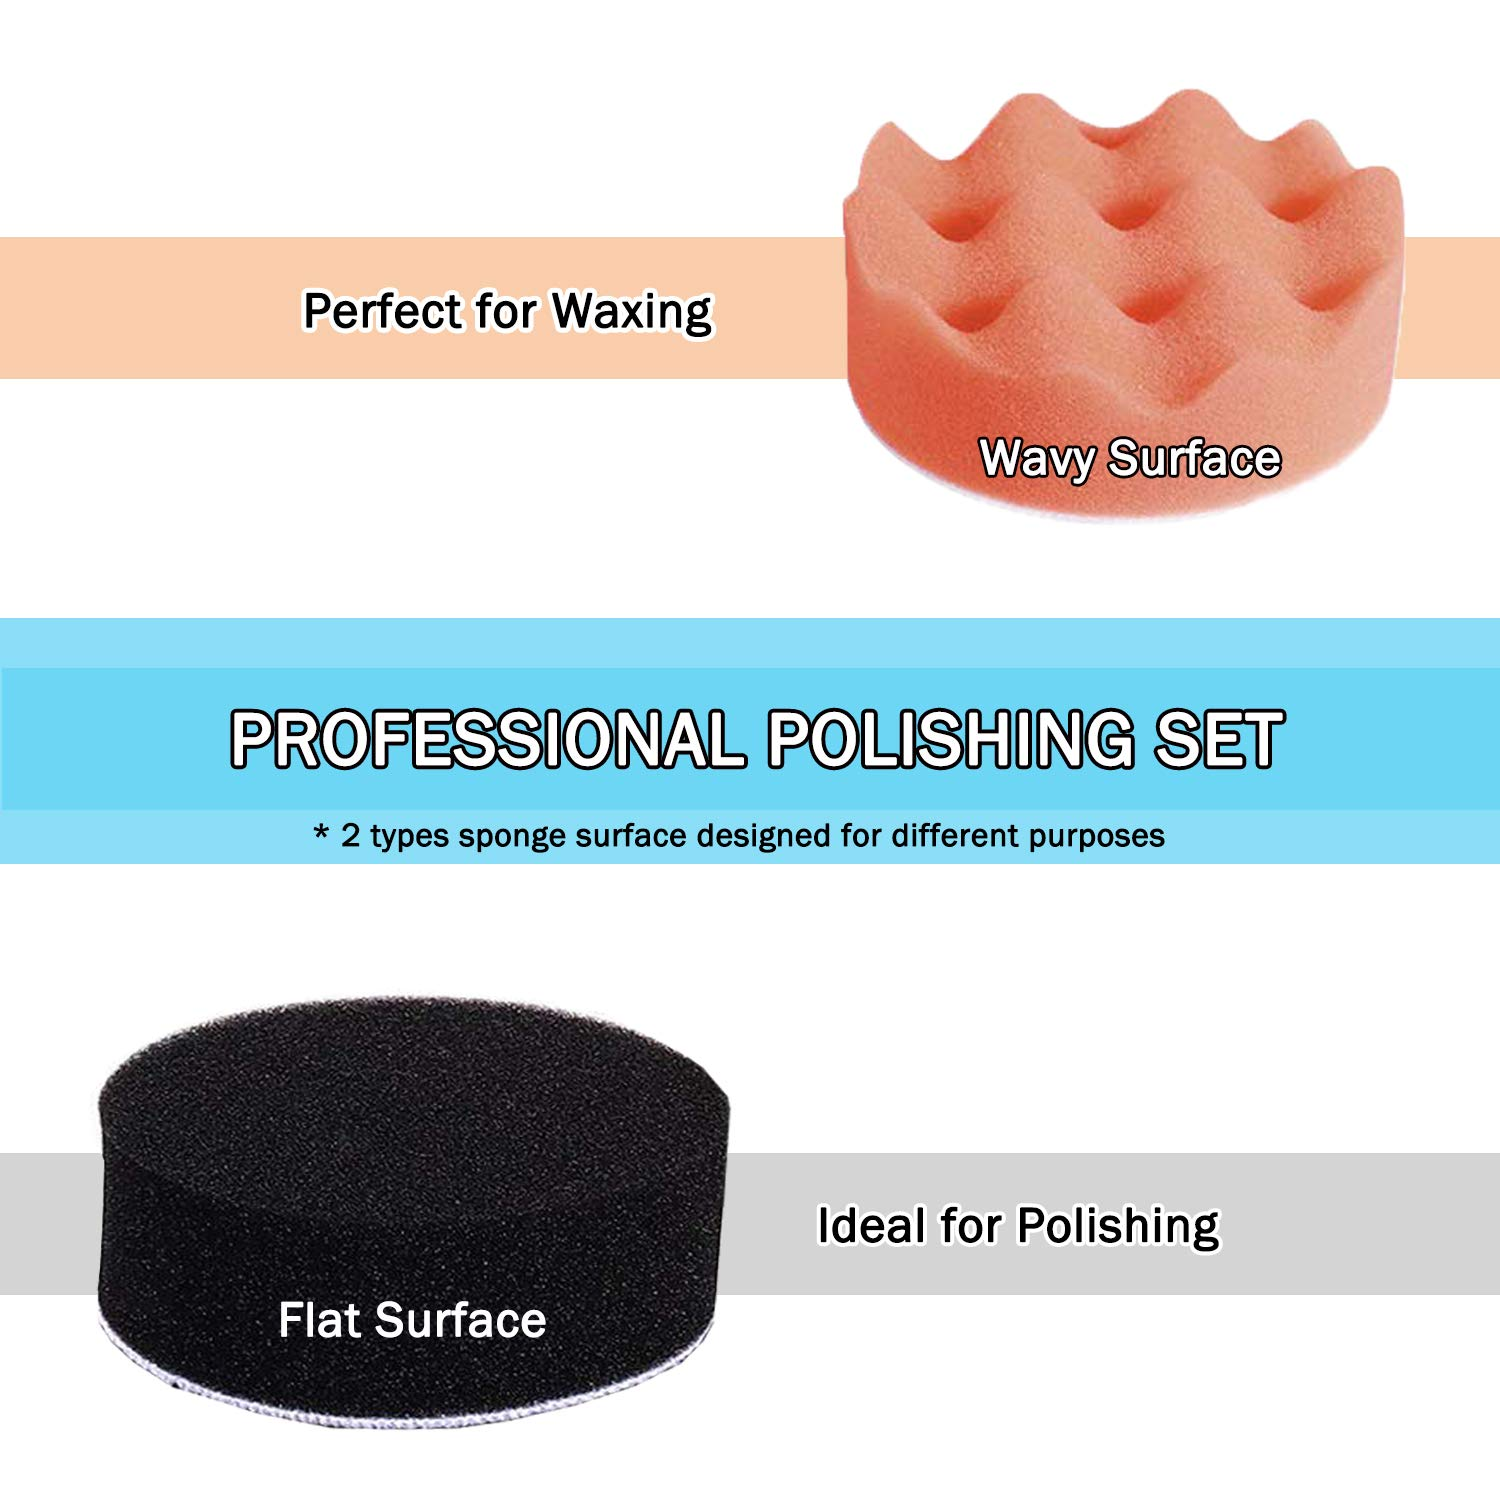 Polishing Pads Sponge Buffing Pads Set Kit 22PCS with M10 Drill Adapter for Auto Car Polishing Waxing and Sealing Glaze Multicolor with Various Hardness Level